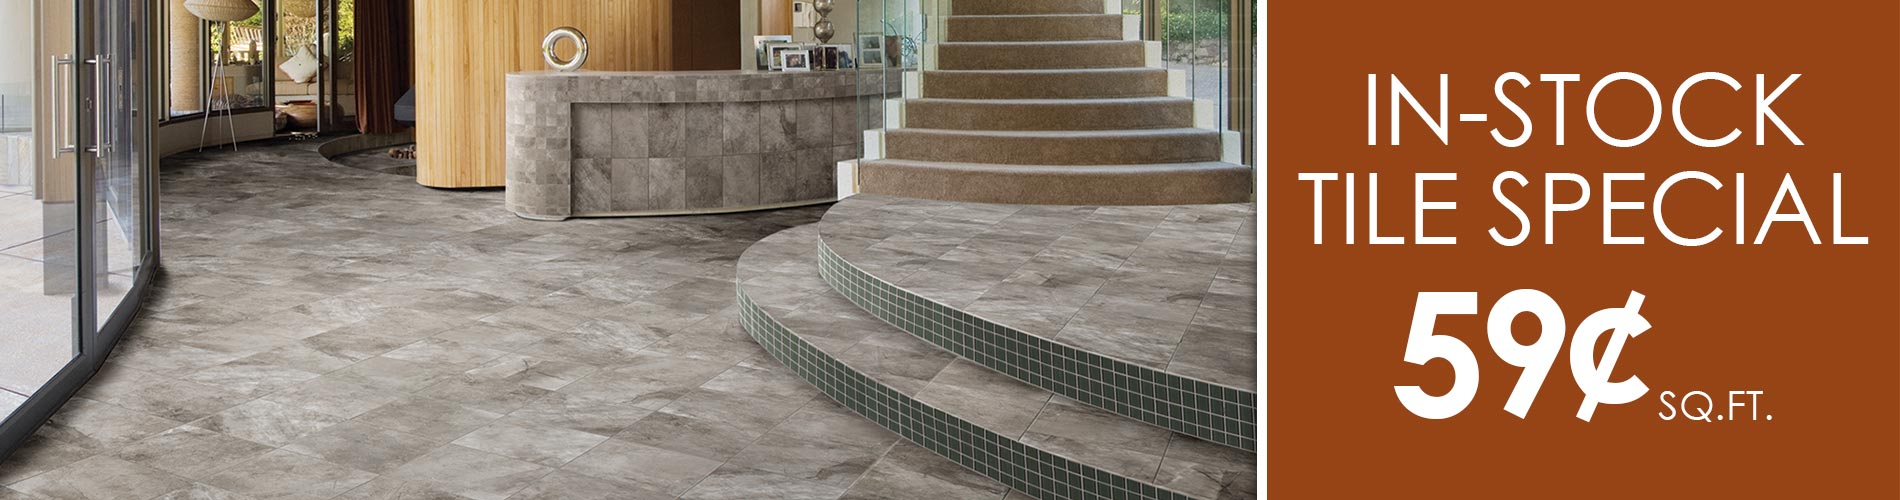 In-Stock tile special going on now! In-Stock tile starting at only 99¢ Sq.ft. Only at The Carpet Barn in North Little Rock and Pine bluff, Arkansas